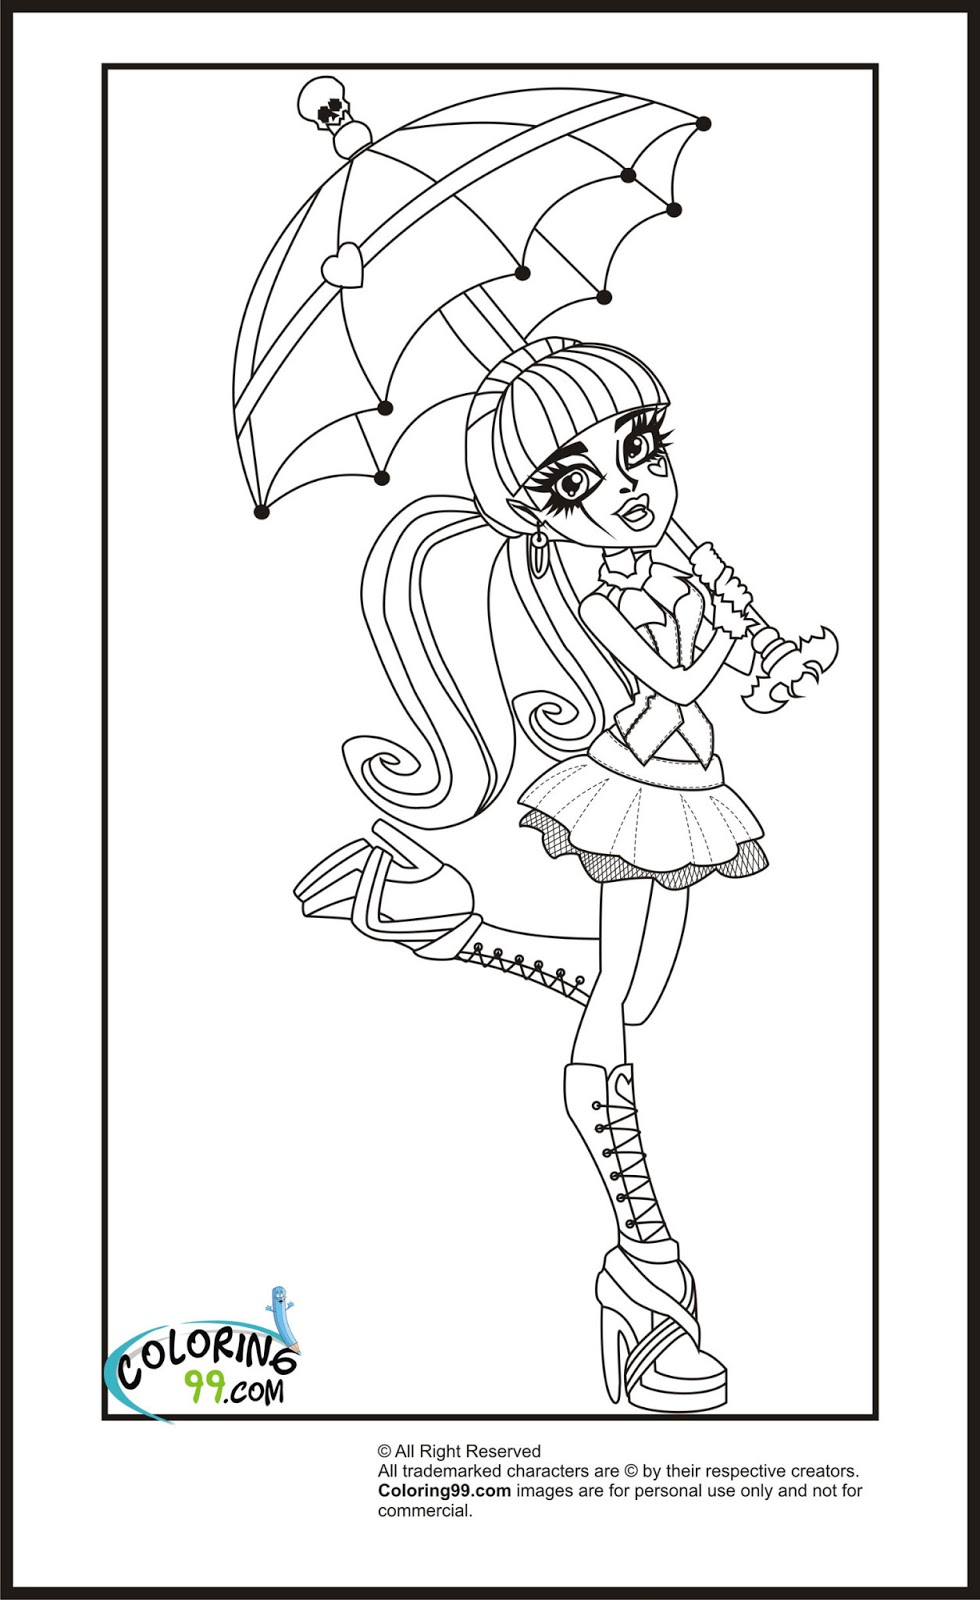 Unique Comics Animation: ultimate monster high coloring pages